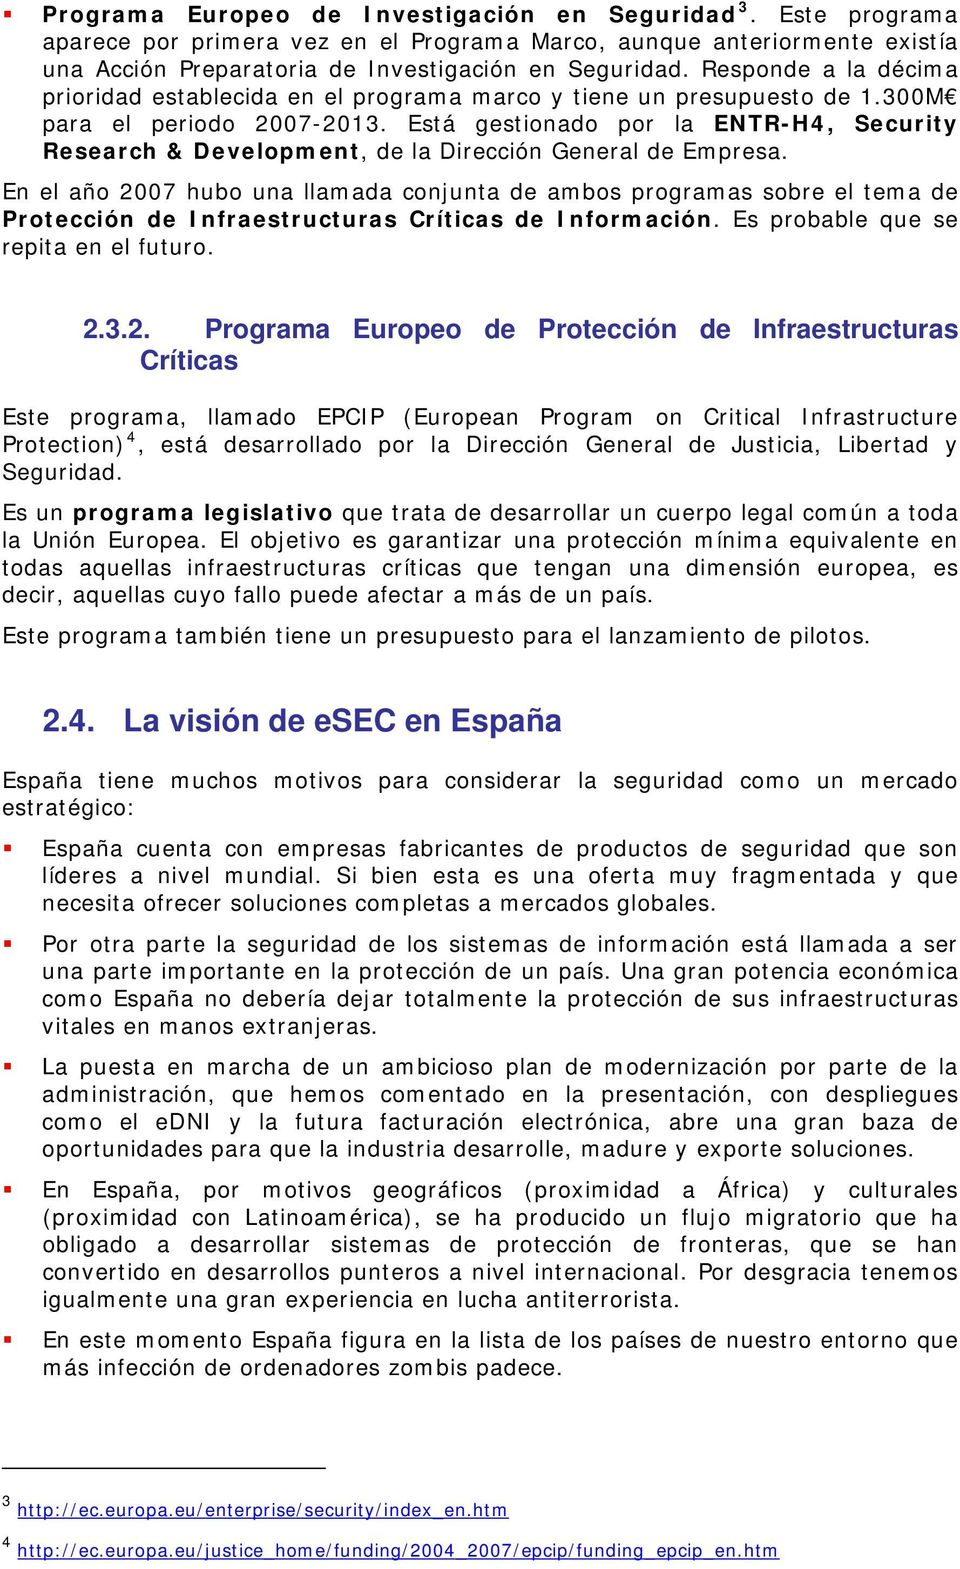 Está gestionado por la ENTR-H4, Security Research & Development, de la Dirección General de Empresa.